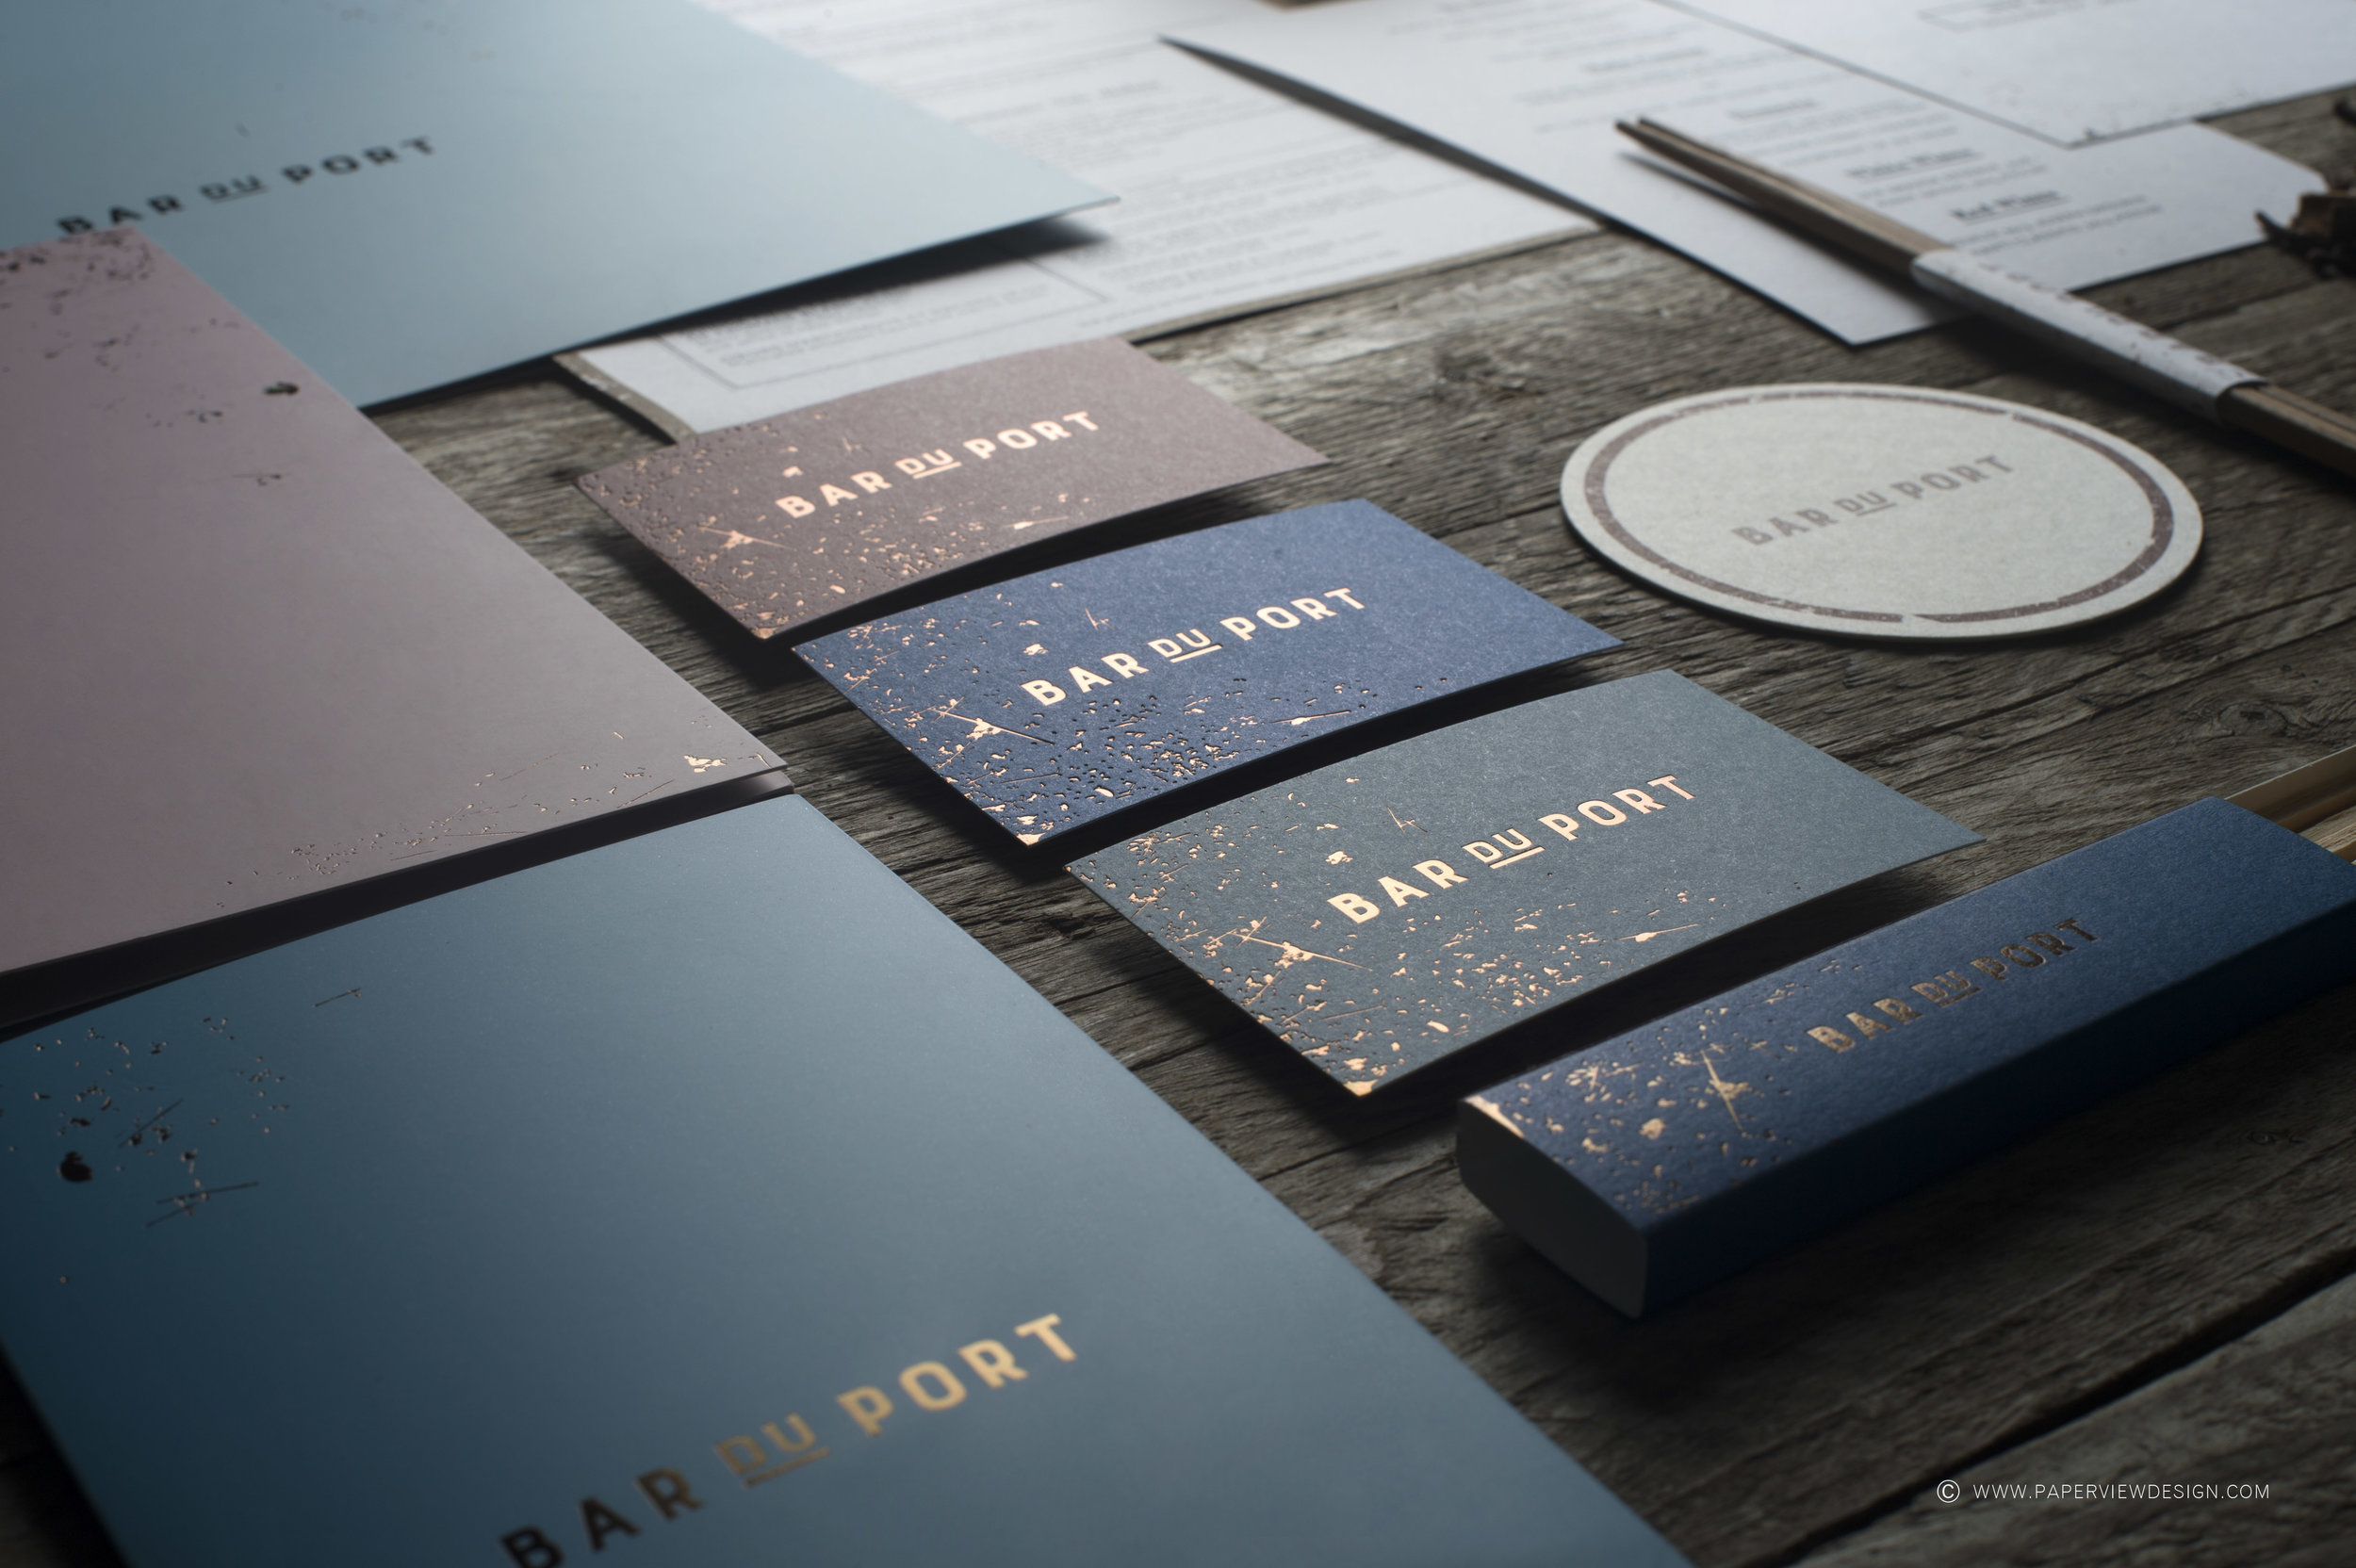 Business-Cards-Bar-Port-Hot-Foil-Texture-Papers-Coasters-Matches-Menu-Branding-Layout